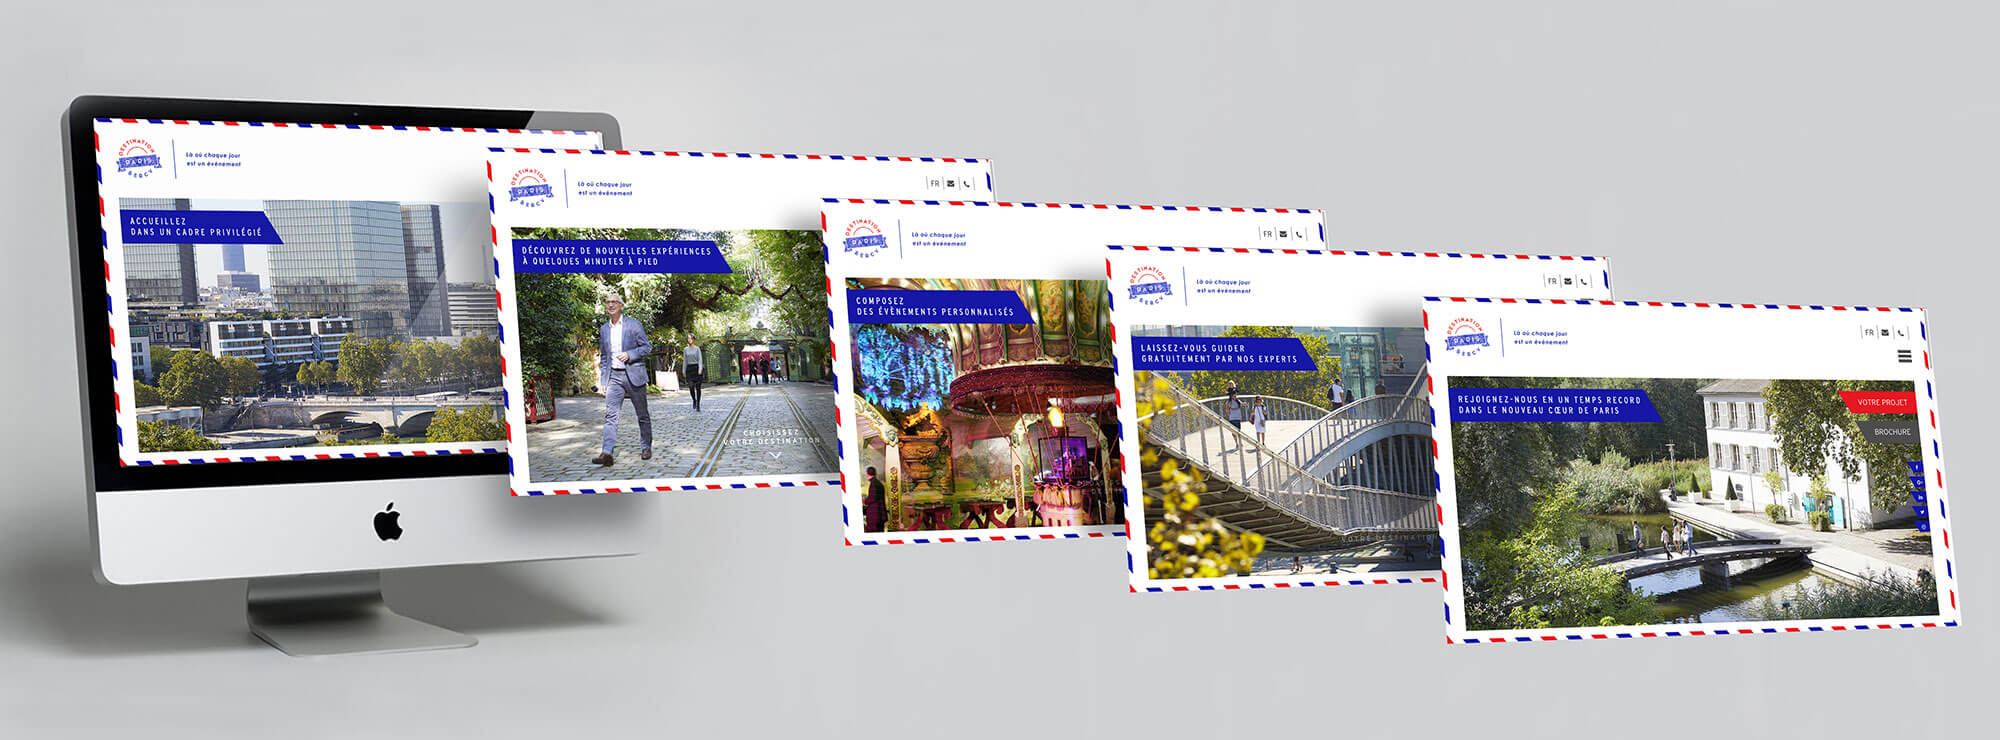 05.destination paris bercy home page site carrousel.jpg